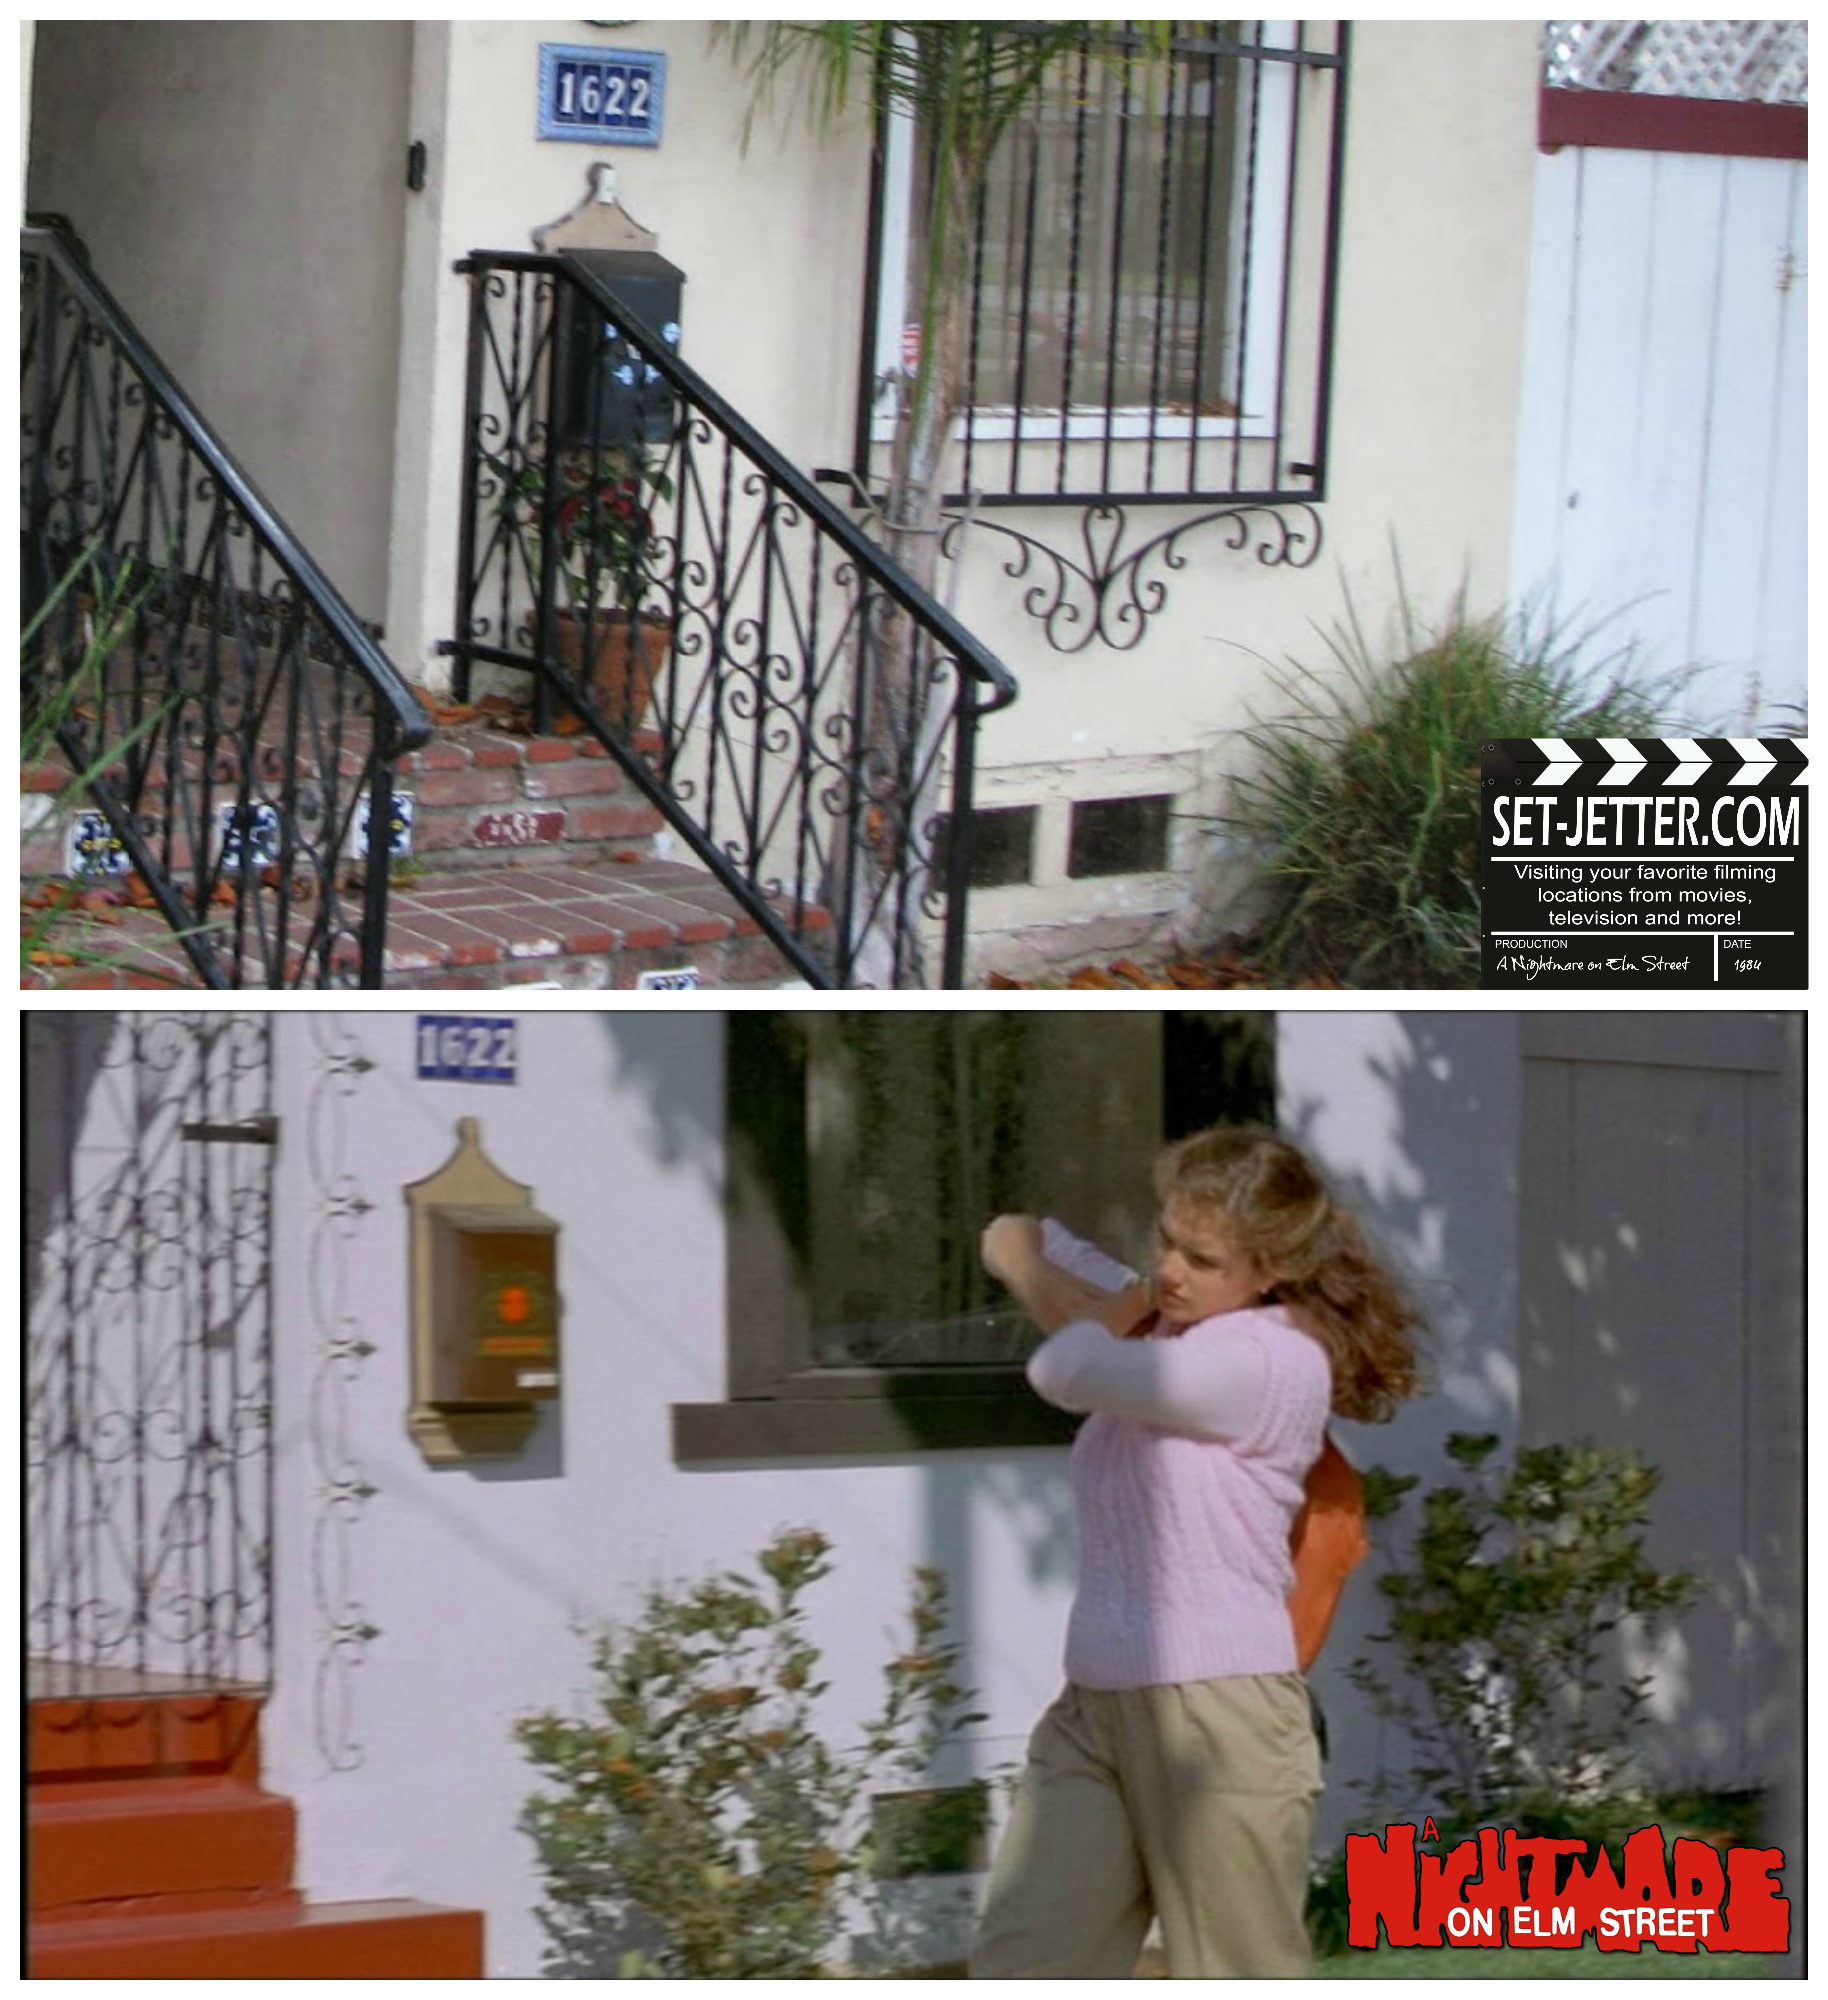 Nightmare on Elm Street comparison 17.jpg